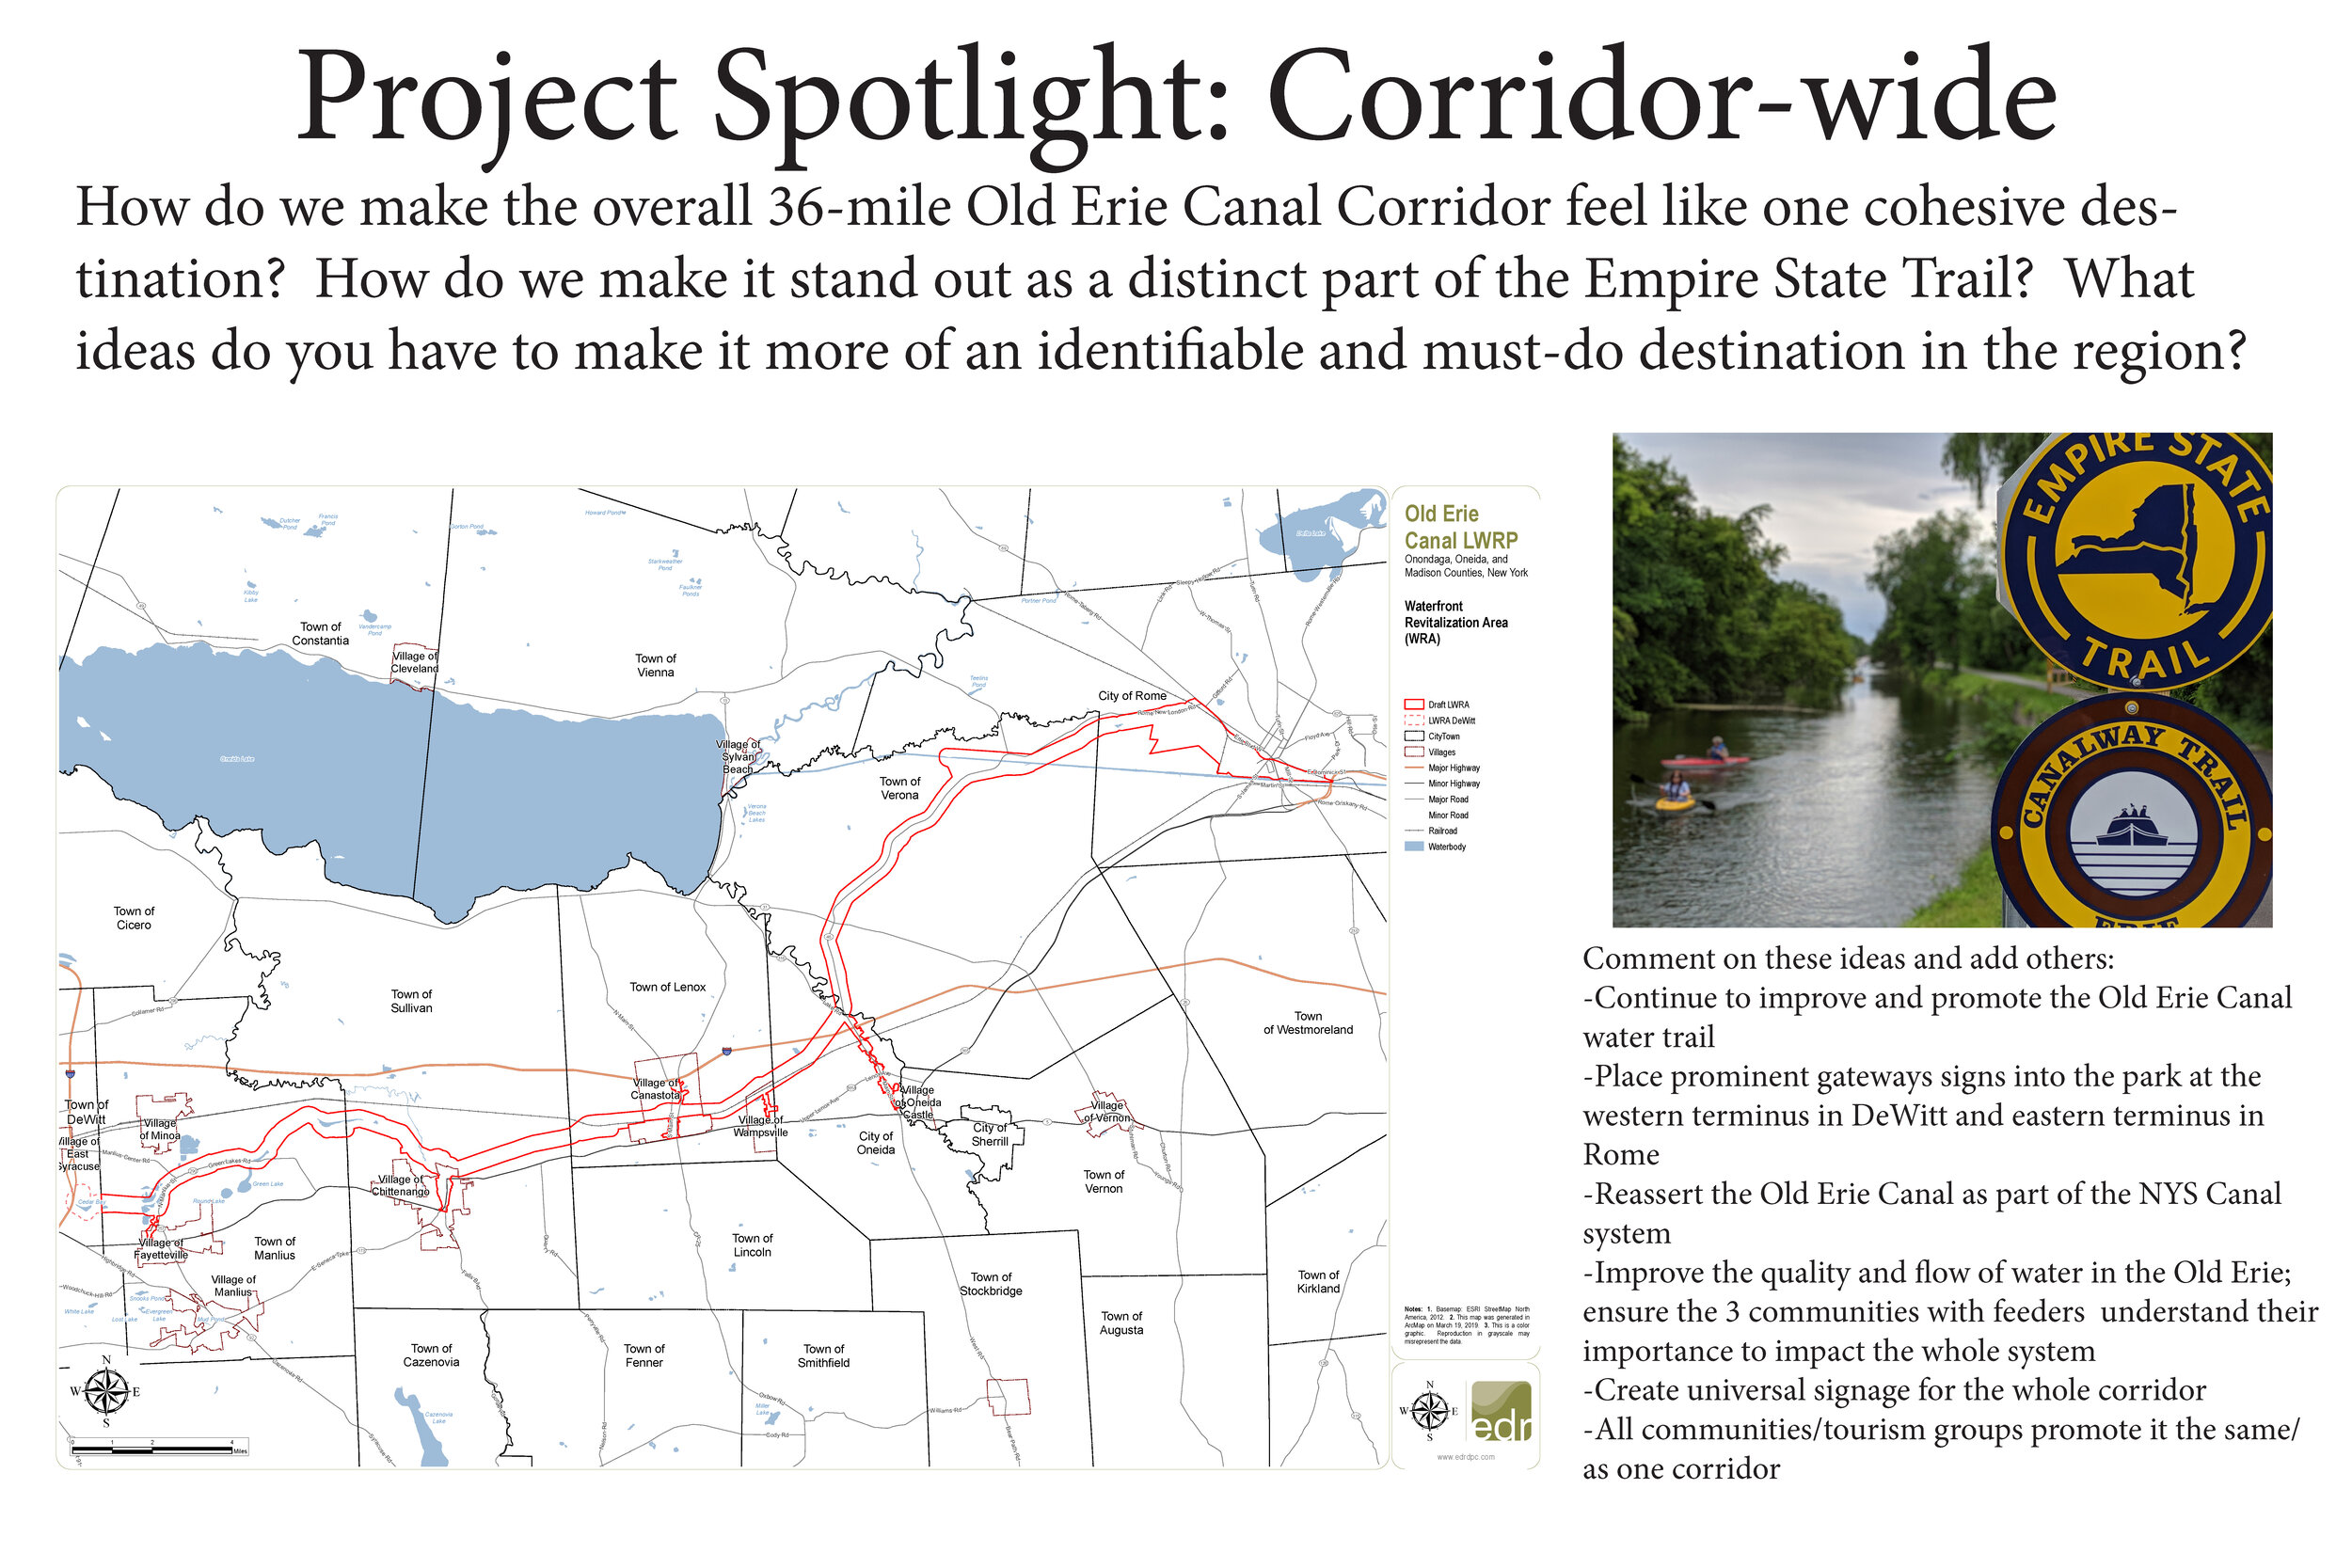 Corridor-wide projects -